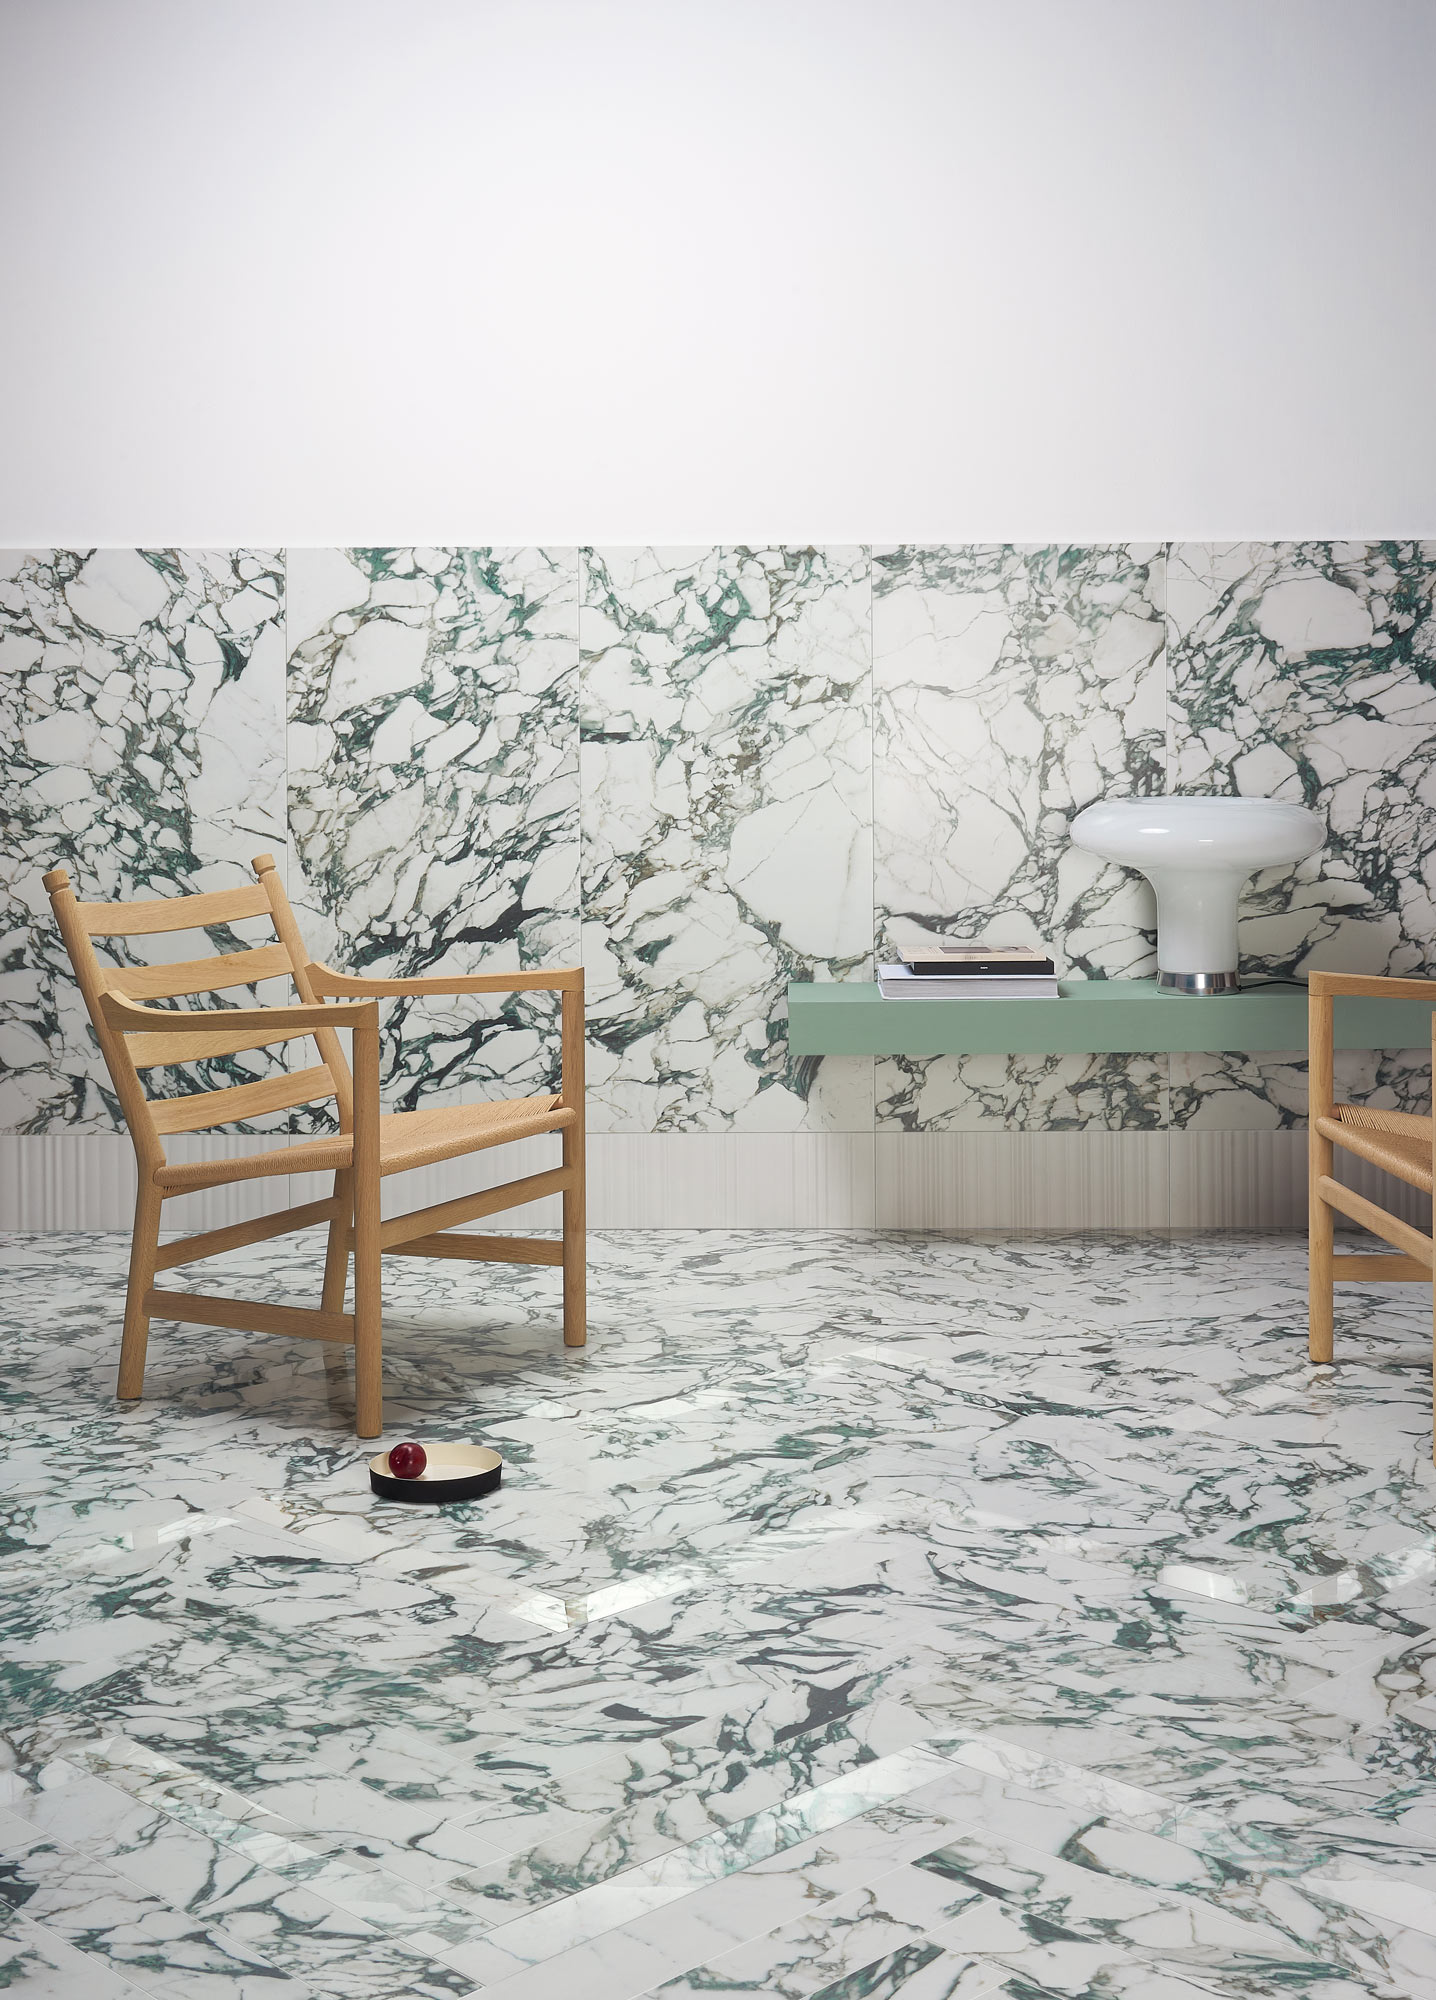 "Wall Pulp Green Double Honed 60x120 24""x48"" - Parallel 20x60 8""x24"" - Floor Pulp Green Double Honed 10x60 4""x24"" - Pulp Green Double Polished 7,5x60 3""x24"